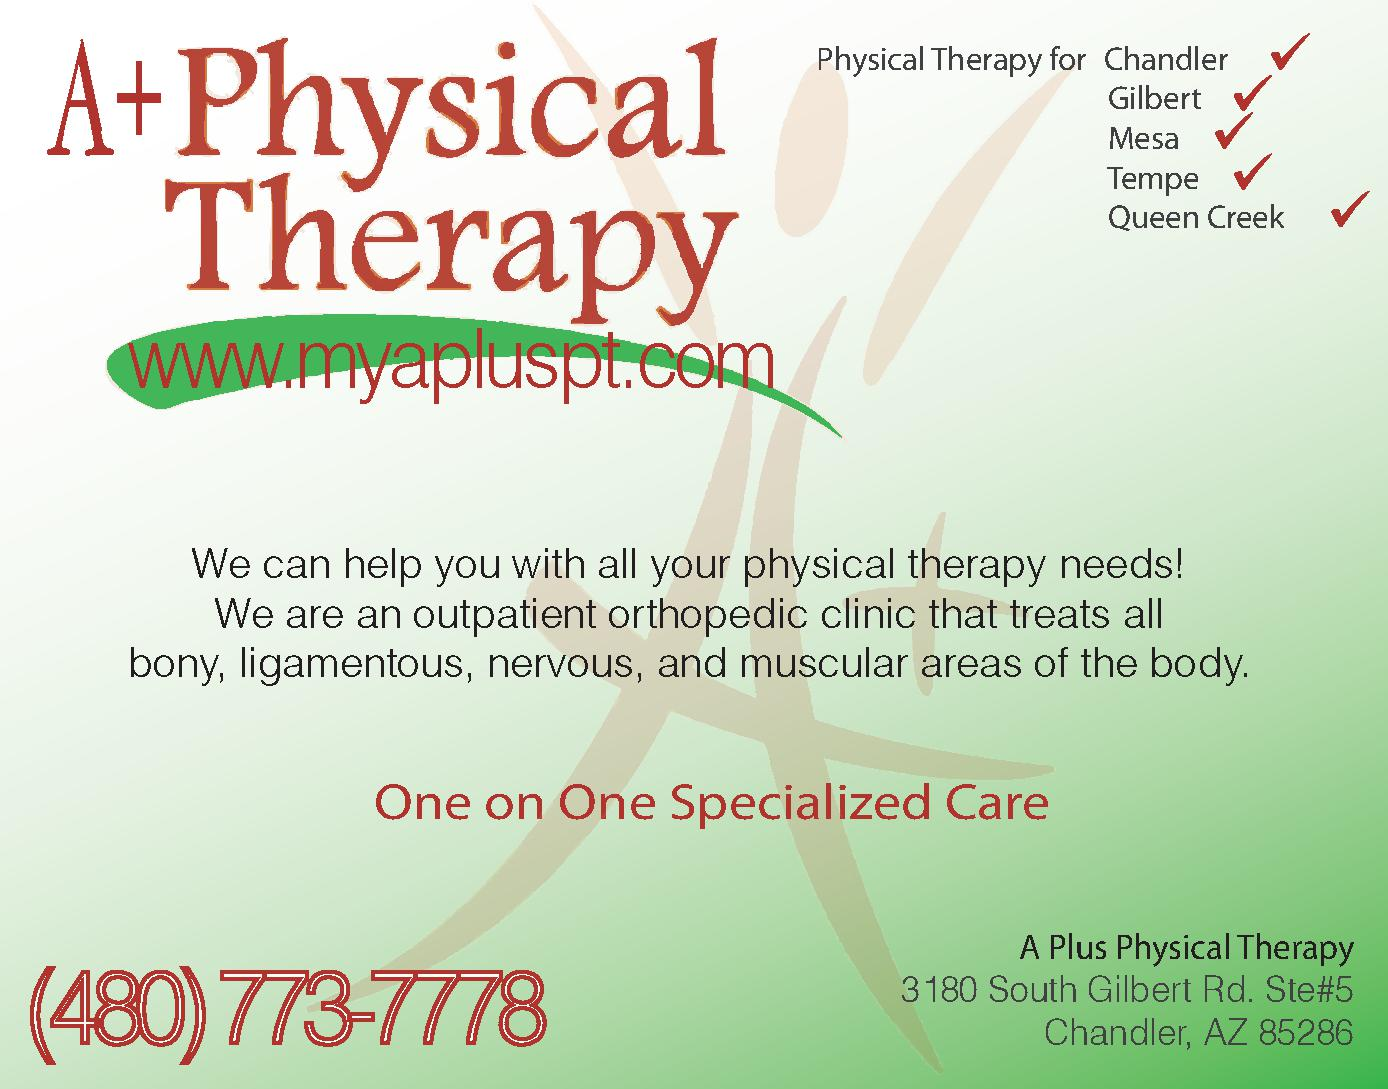 A Plus Physical Therapy